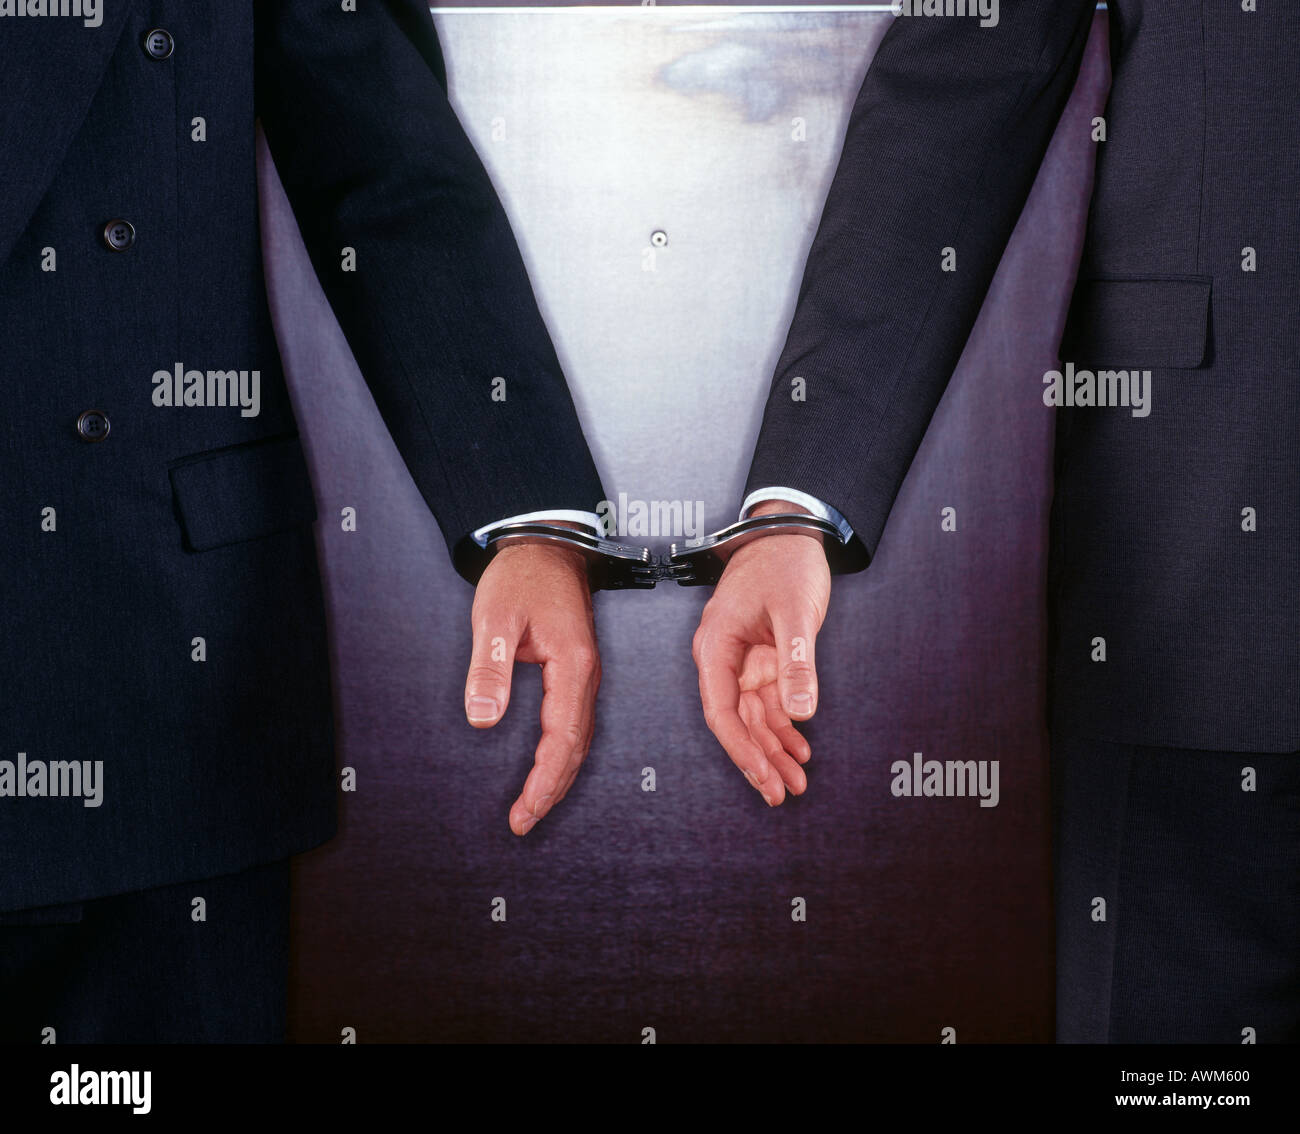 Close-up of two businessmen handcuffed together - Stock Image